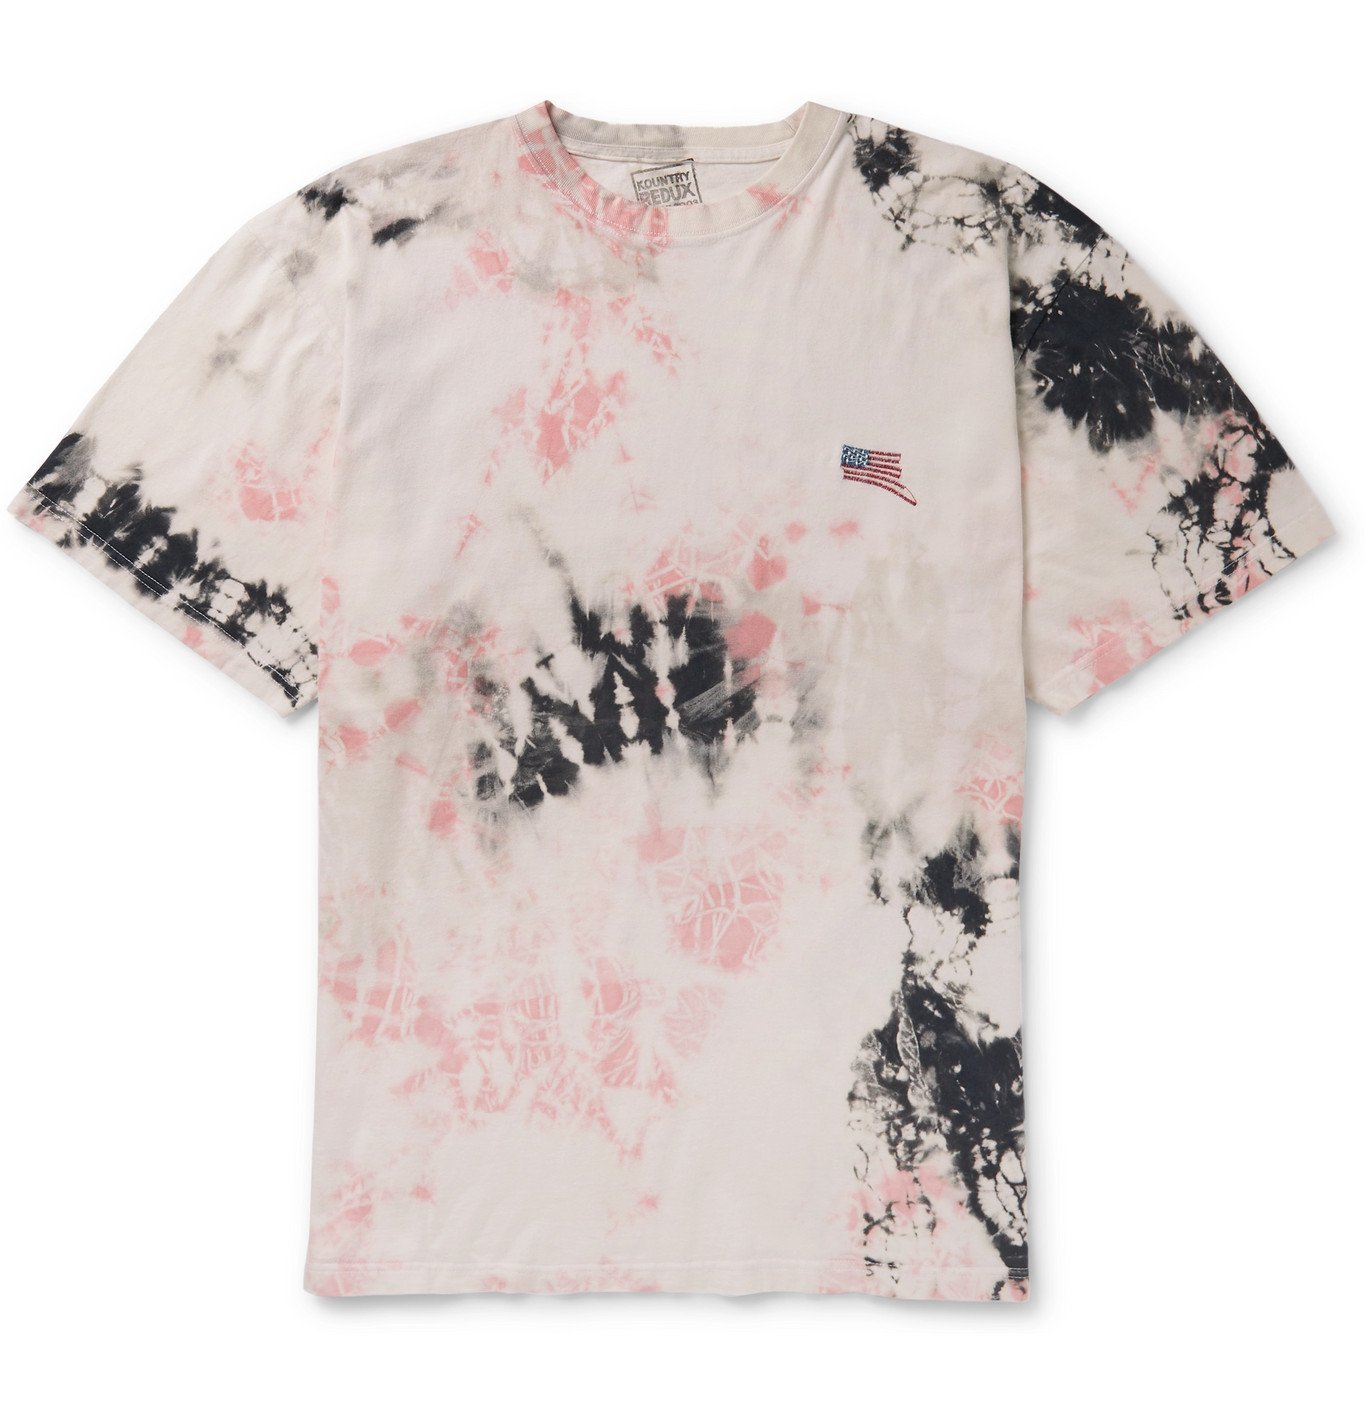 KAPITAL - Ashbury Oversized Embroidered Tie-Dyed Cotton-Jersey T-Shirt - Neutrals